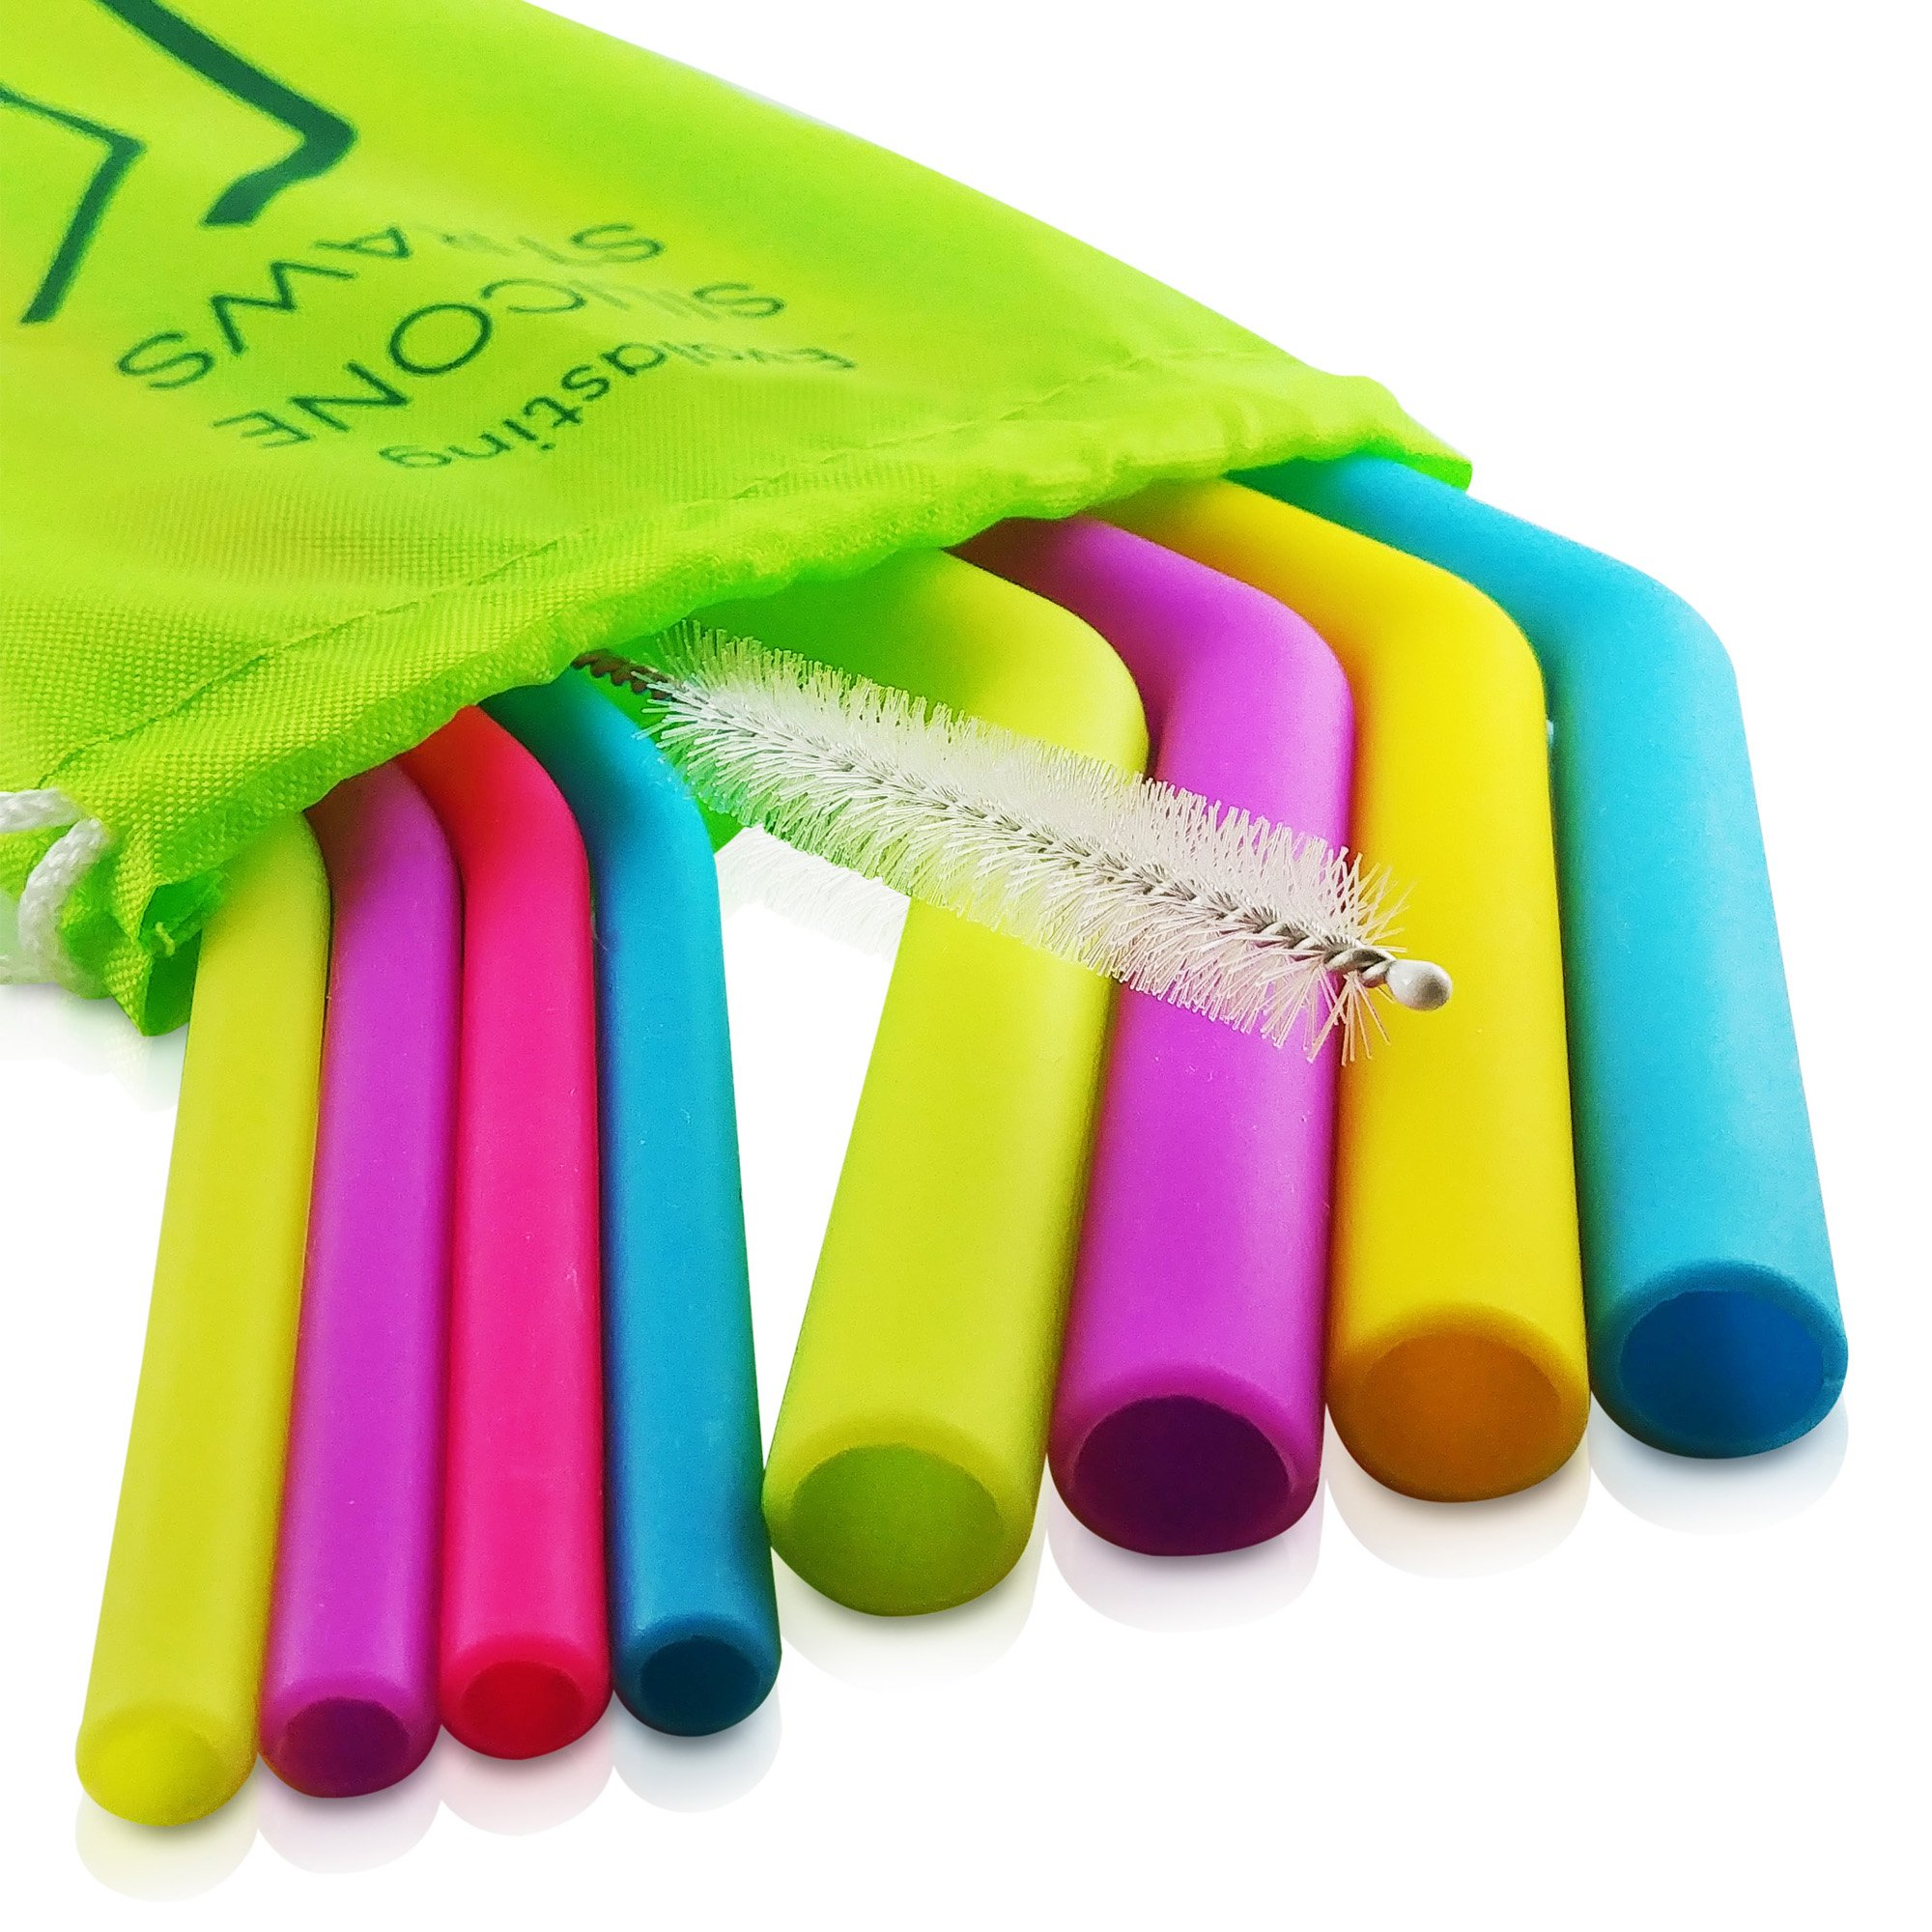 Evalasting Reusable Silicone Straws for Hot or Cold Beverages- FDA Approved Food Grade Silicone, BPA Free - Contains: 4 Thin + 4 Large Long Straw Fits 30 oz Tumbler + Cleaning Brush + Travel Pouch by Evalasting (Image #1)